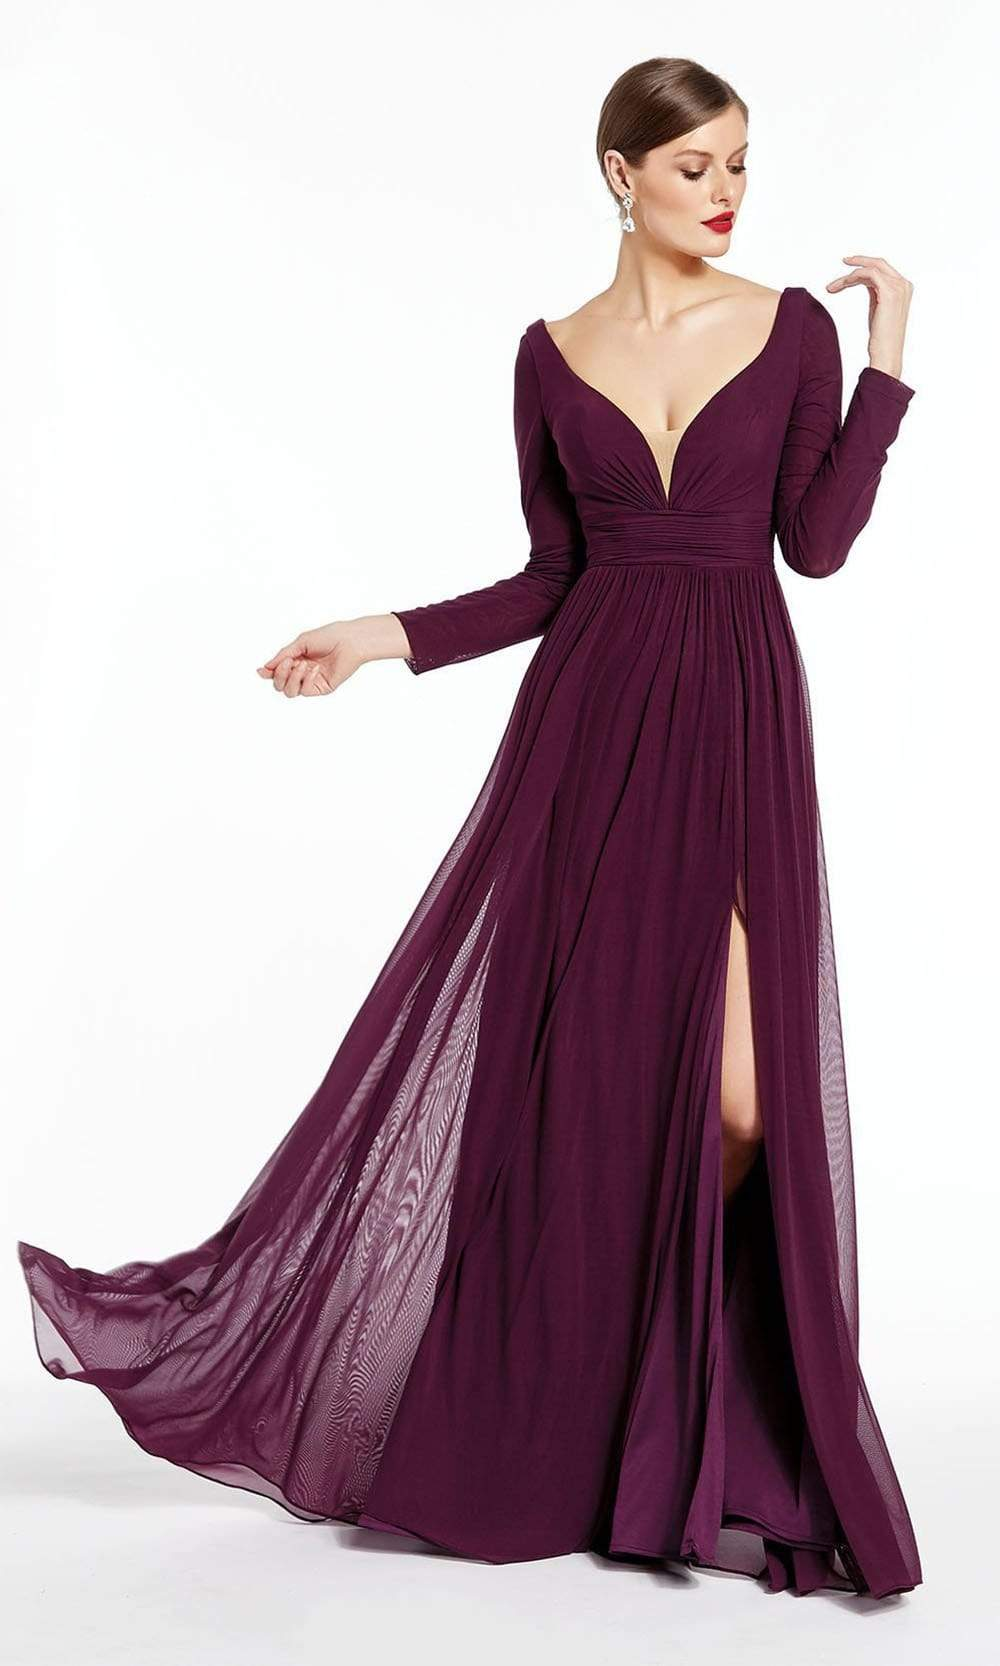 Alyce Paris - 27304 Long Sleeves Mesh Jersey Evening Dress from Alyce Paris